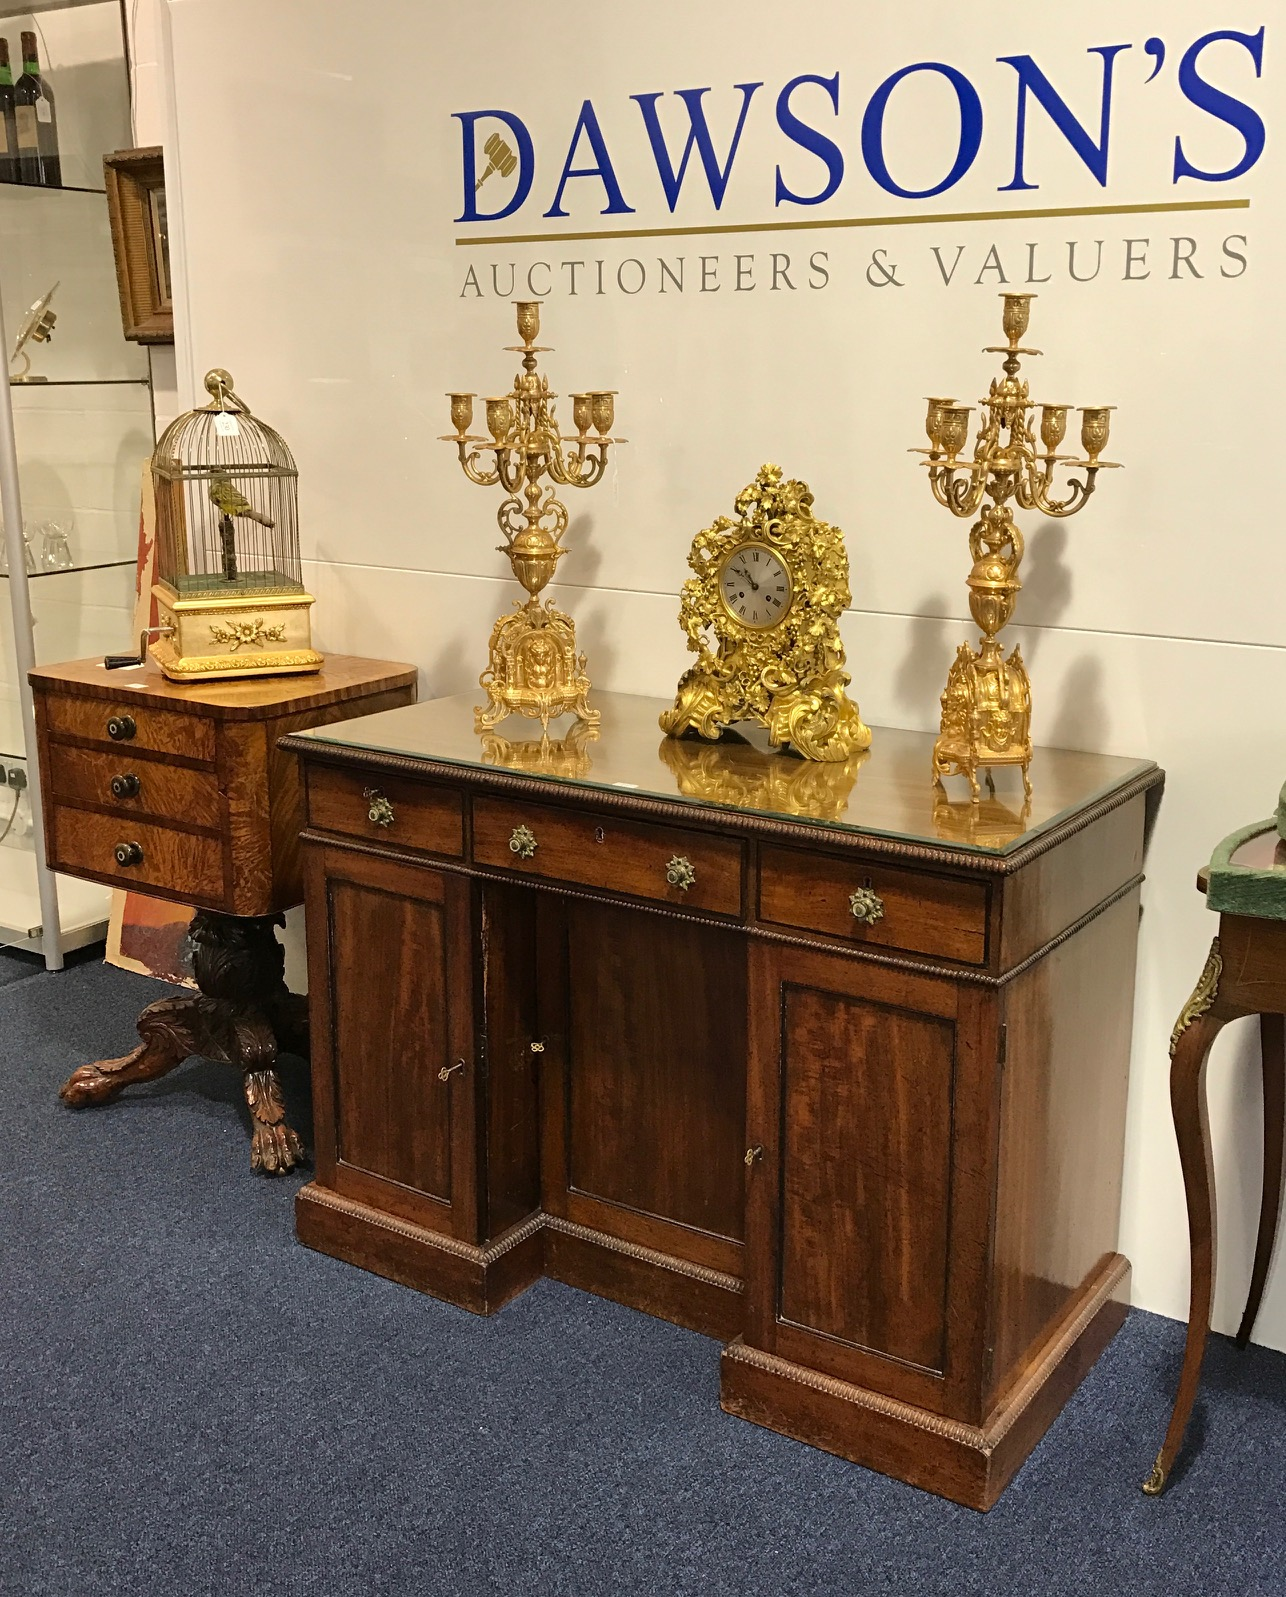 Antiques News & Fairs - Dawsons of Maidenhead appoints Antiques Young Gun